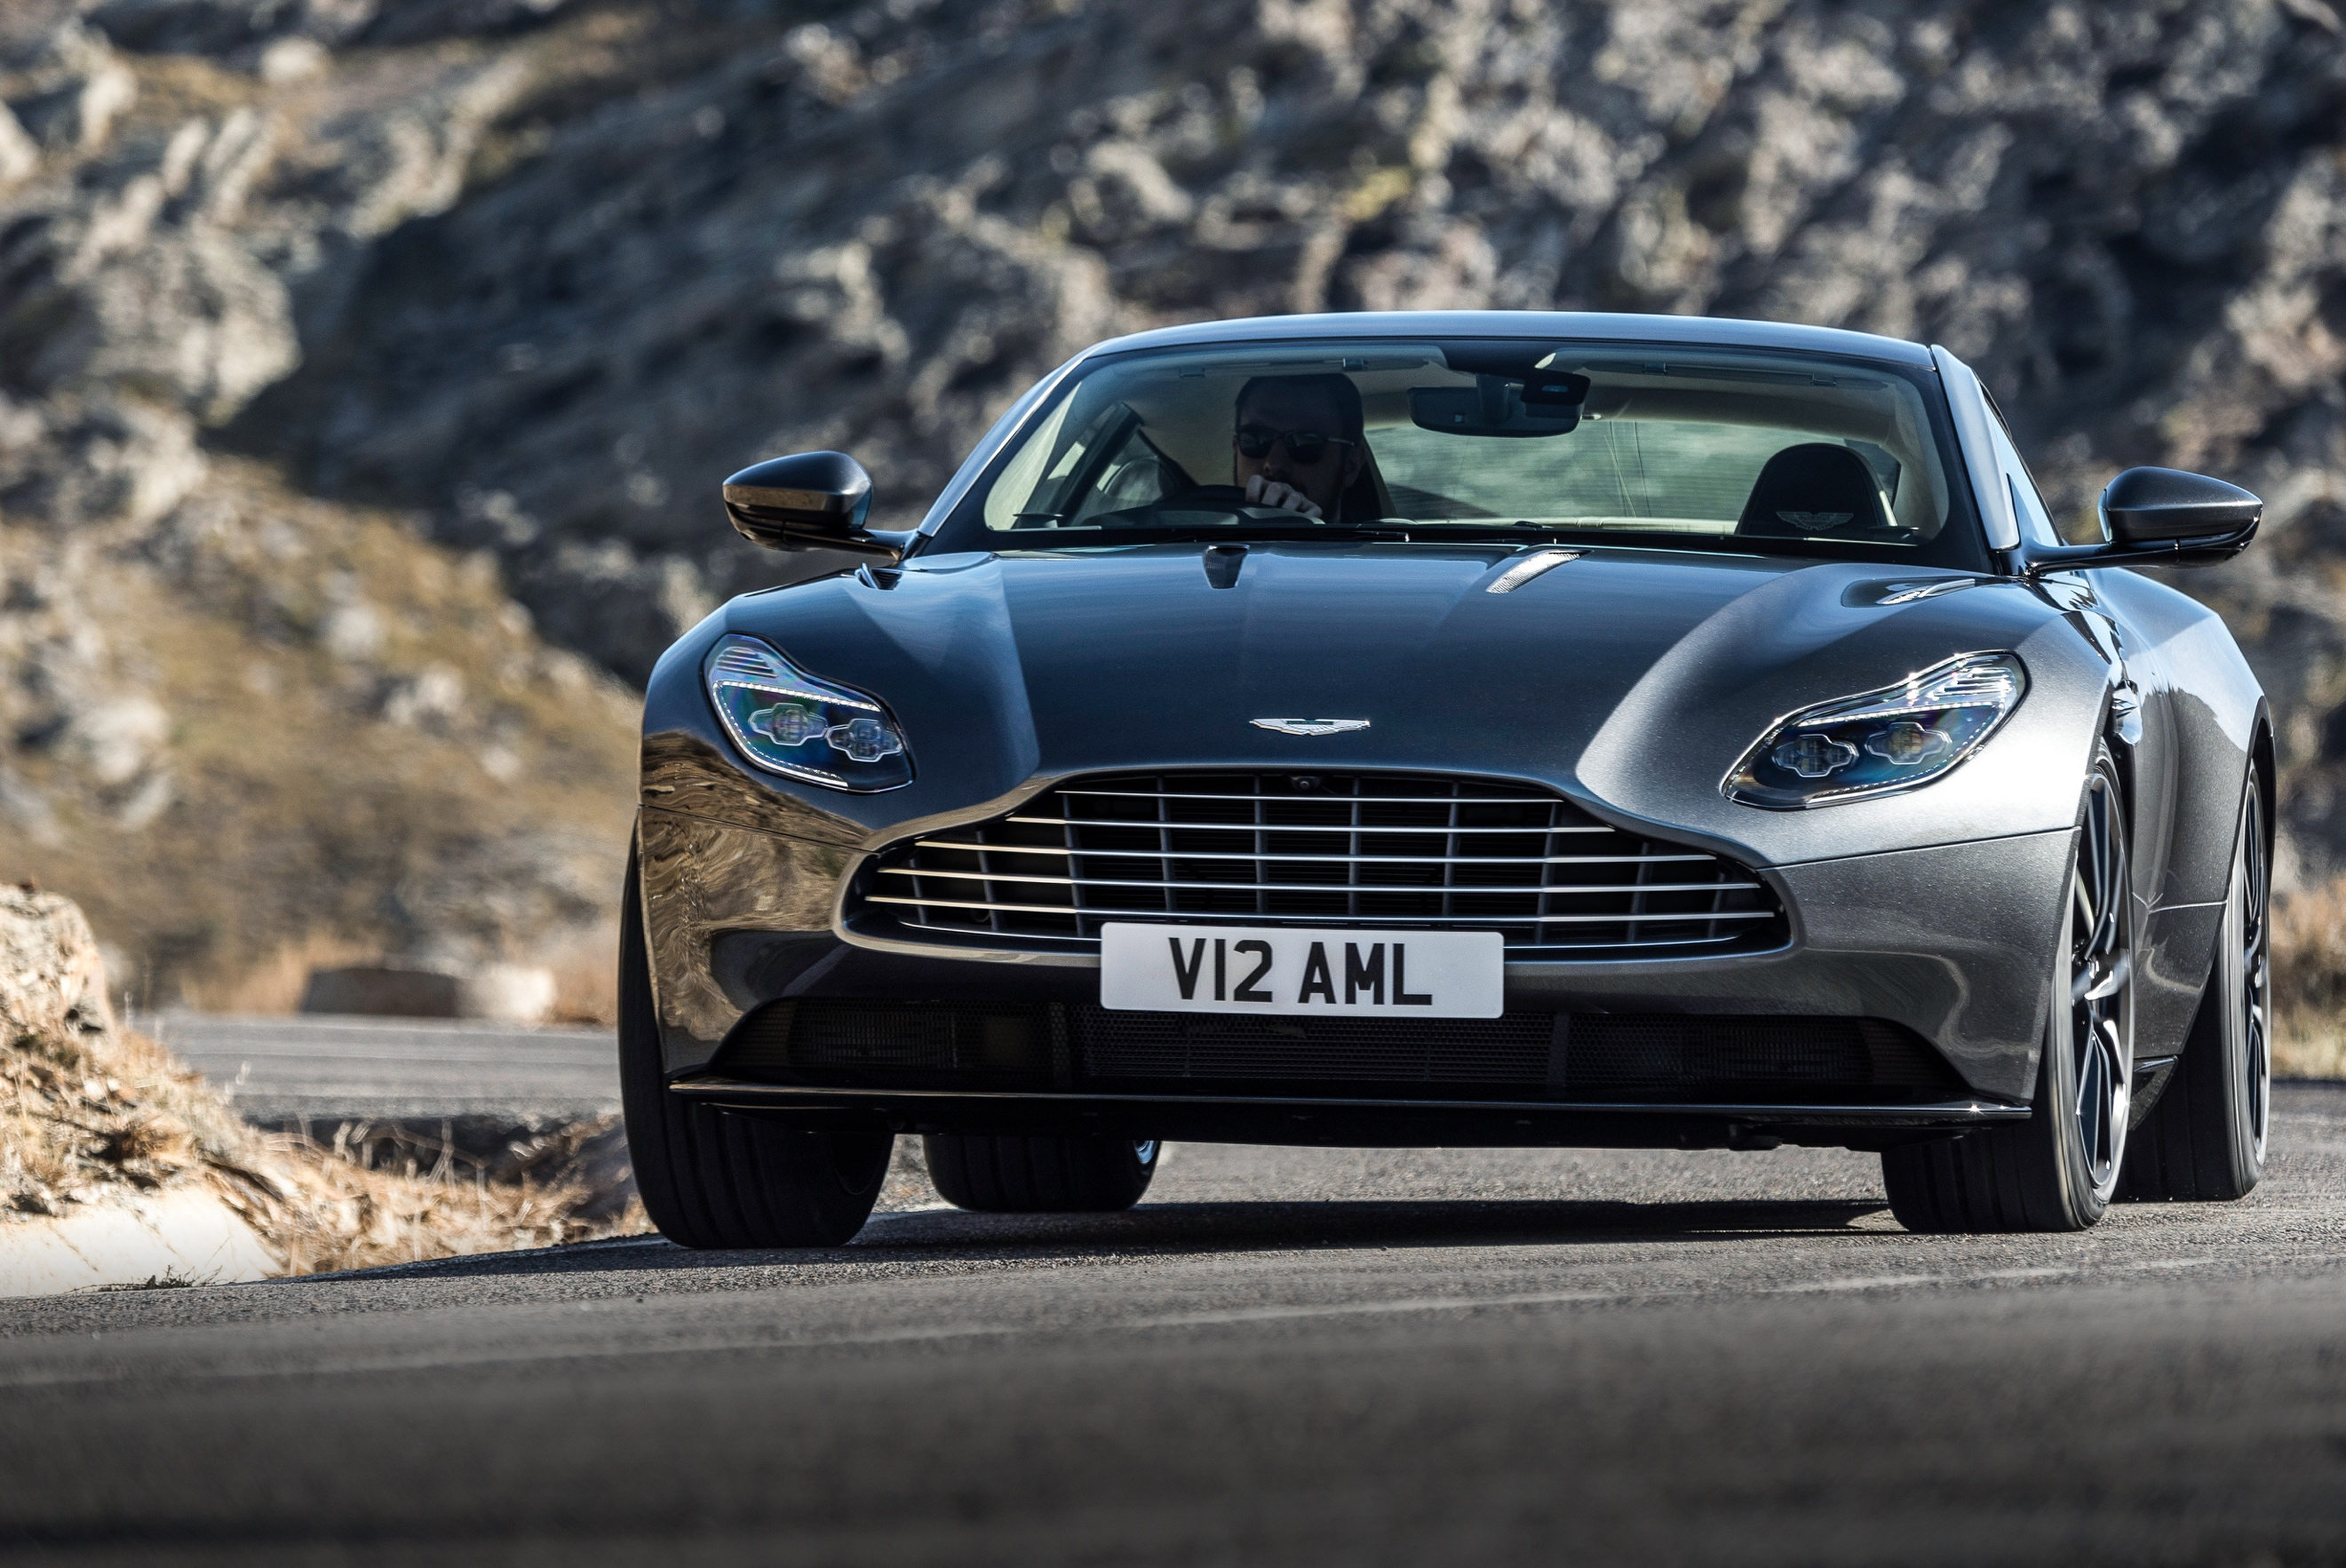 ../Press%20Kits/AstonMartin_DB11%20Press%20Kit%20-%20EMBARGO%2014/DB11%20Launch%20Photography%20(Registration%20Plate)/Aston%20Martin%20DB11_Embargo%20010316%201400CET_18.jpg